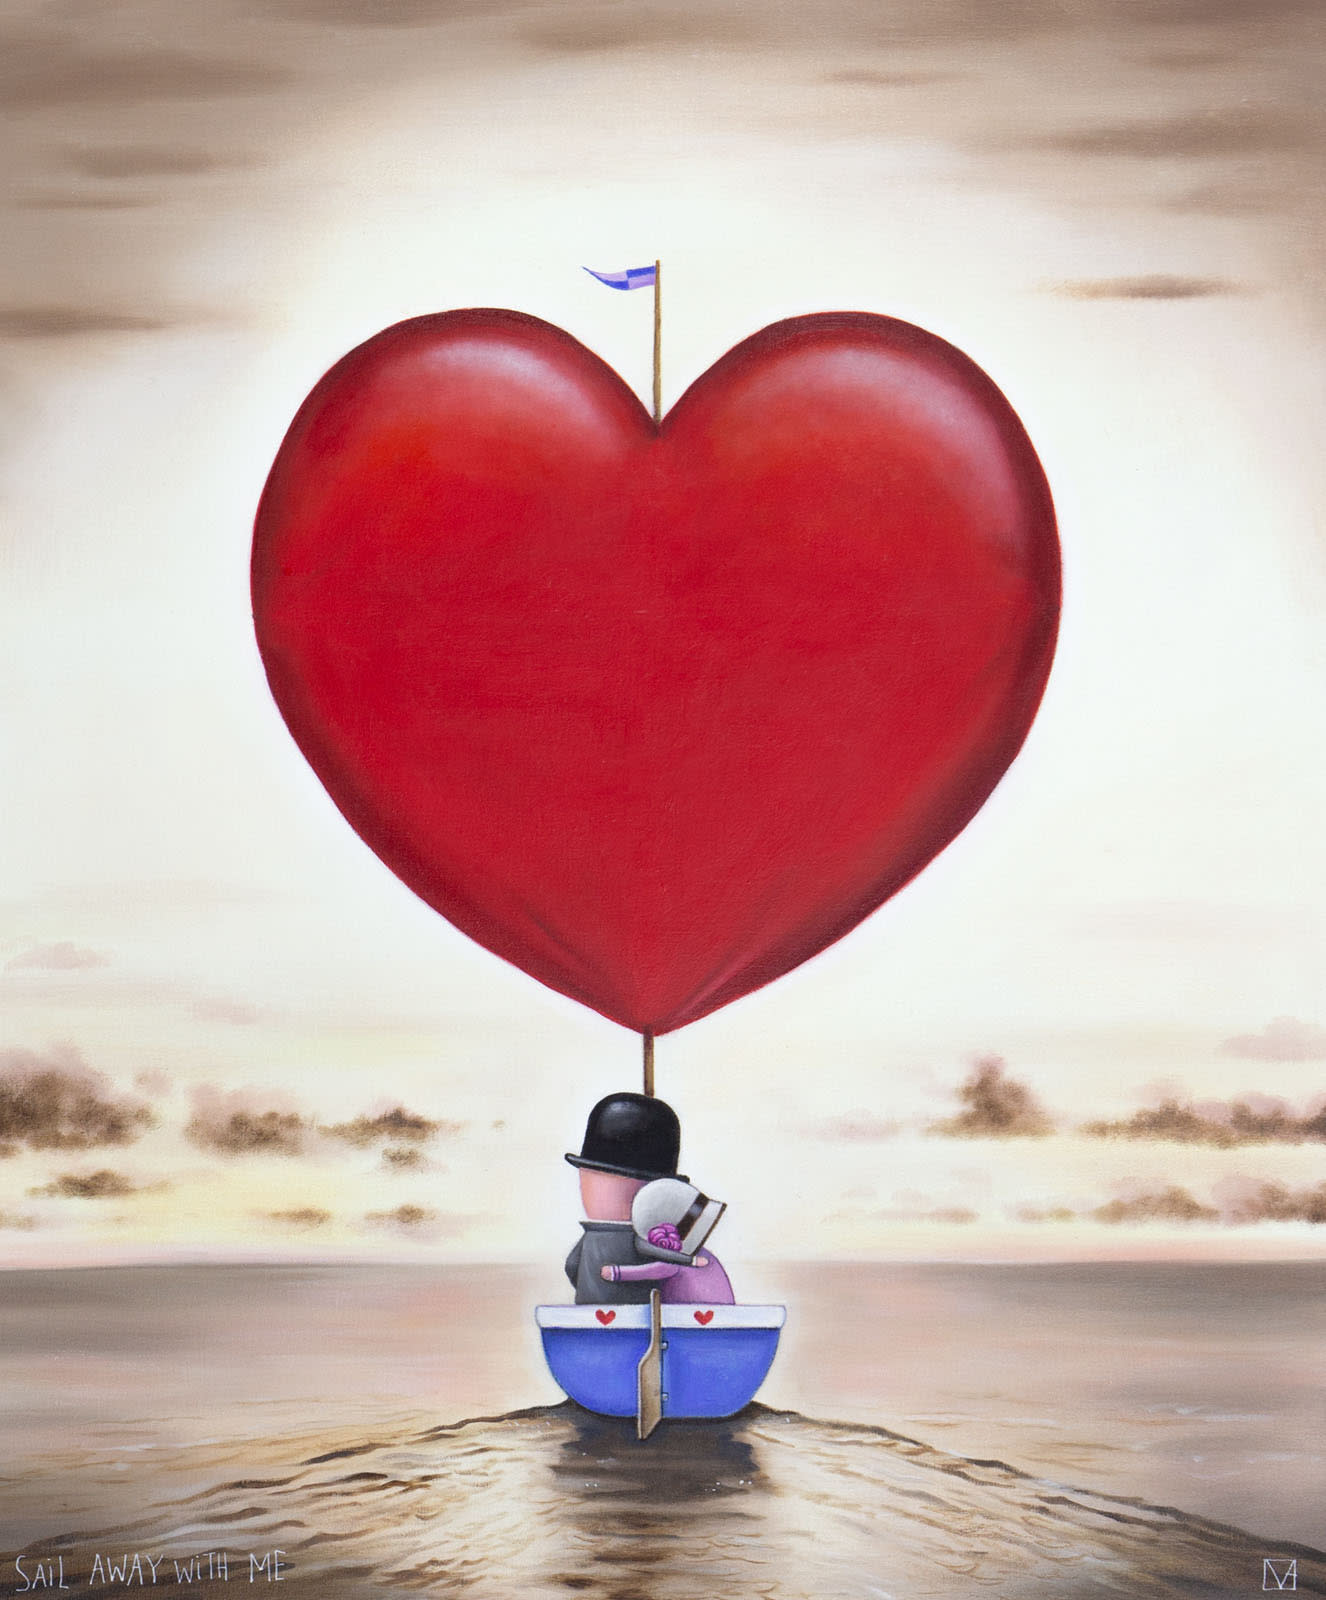 Sail Away With Me (Edition)